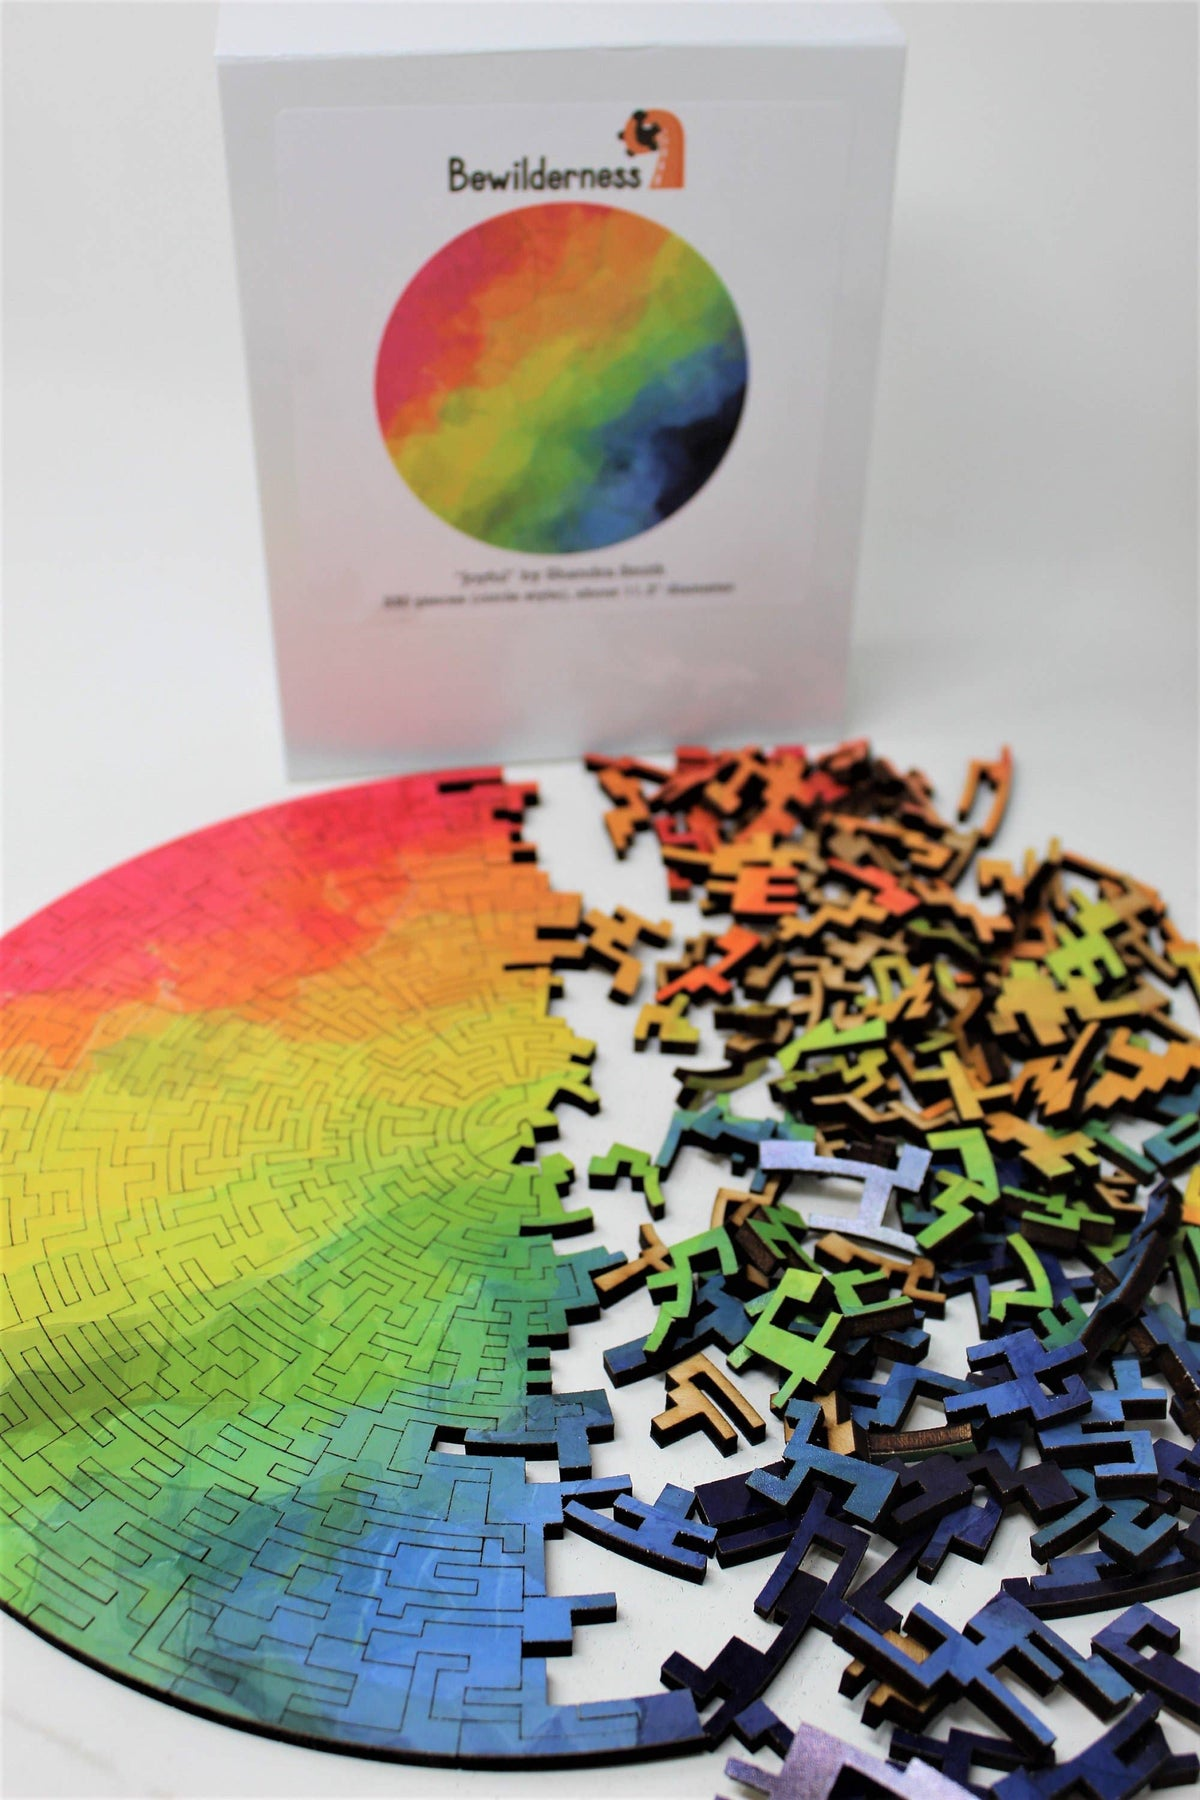 Joyful Circular Wooden Jigsaw Puzzle - 330 Pieces - Quick Ship - Puzzlicious.com